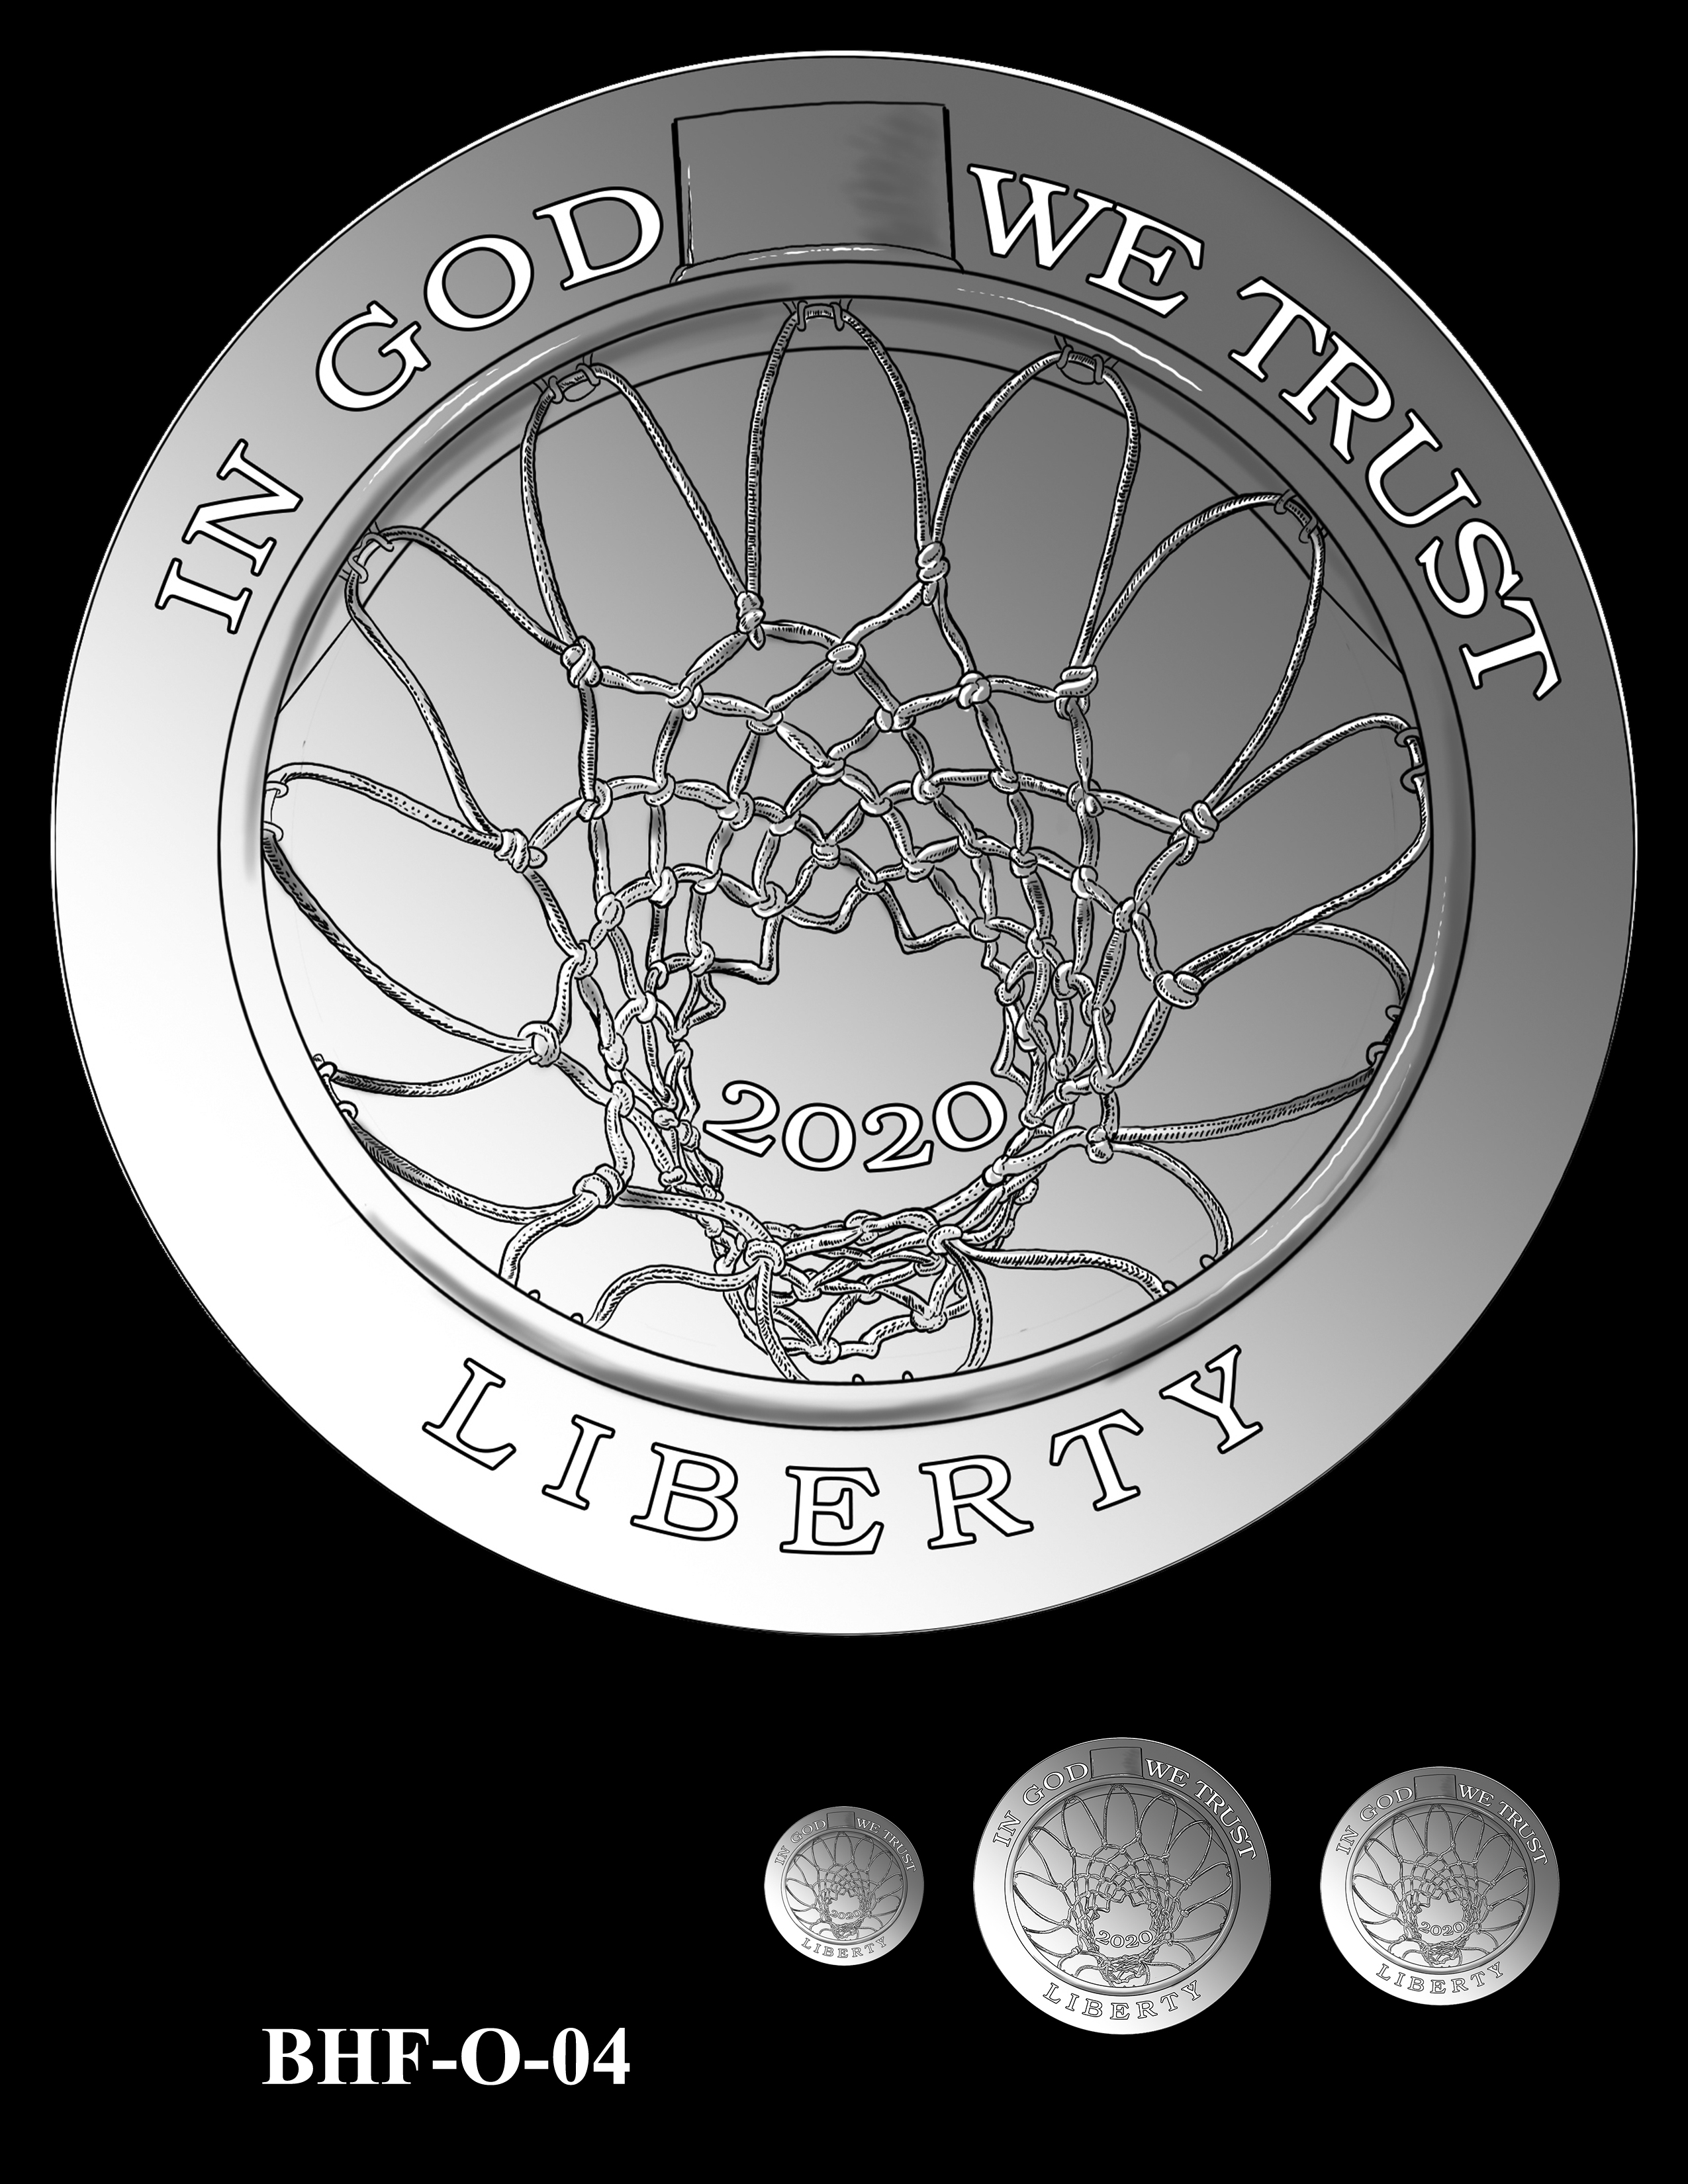 BHF-O-04 -- 2020 Basketball Hall of Fame Commemorative Coin Program - Common Obverse